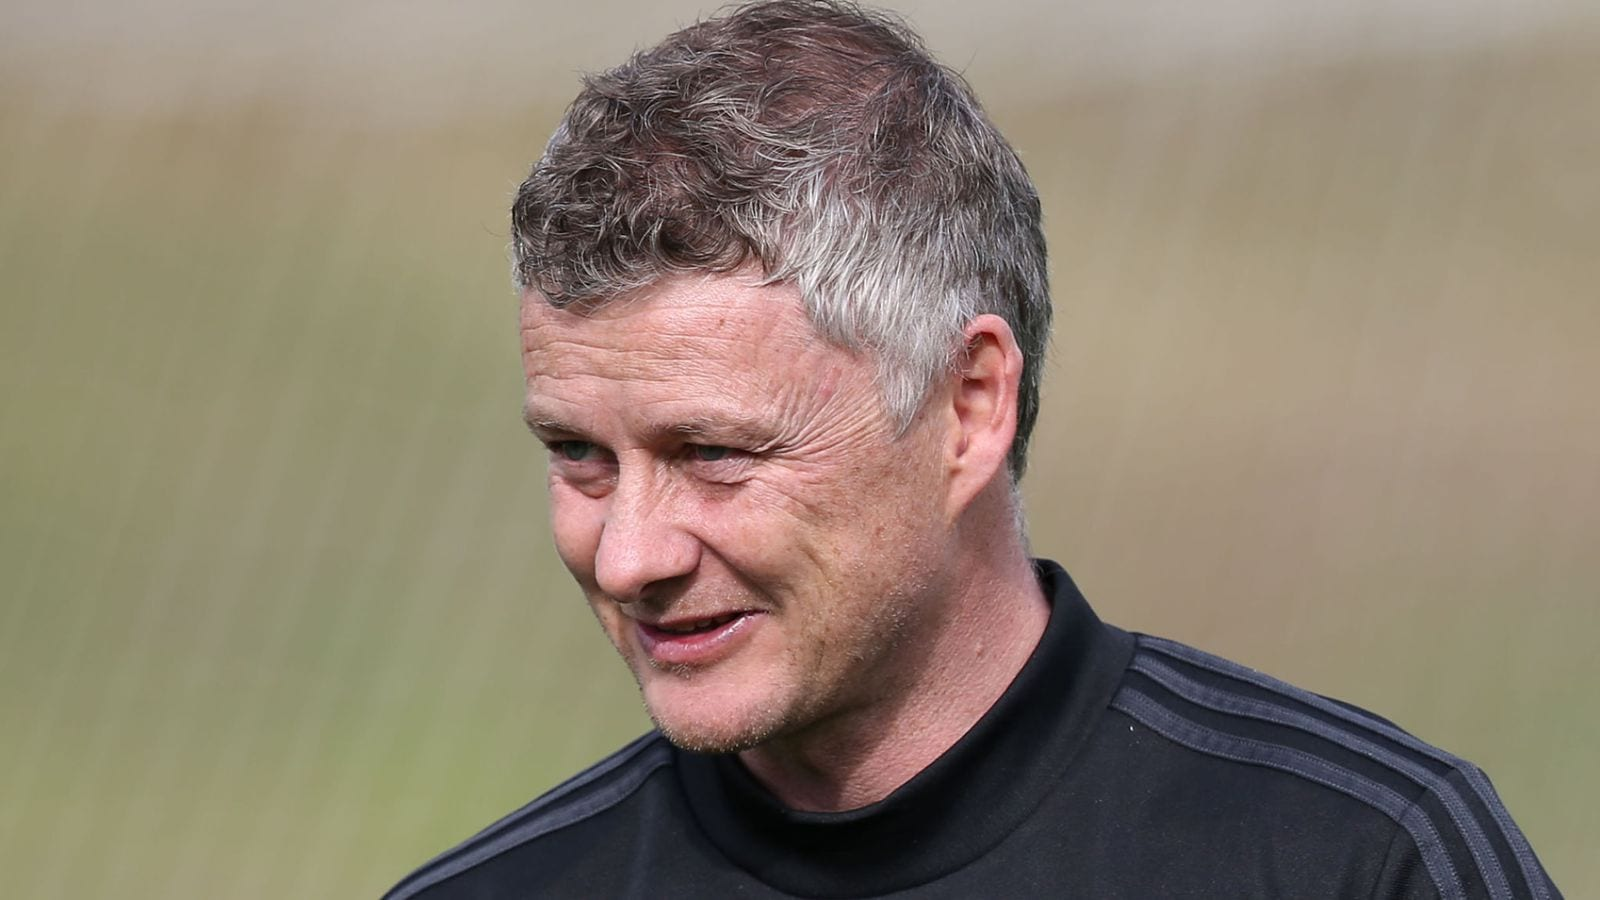 Ole Gunnar Solskjaer says Manchester United don't need Champions League to sign players | Football News | Sky Sports